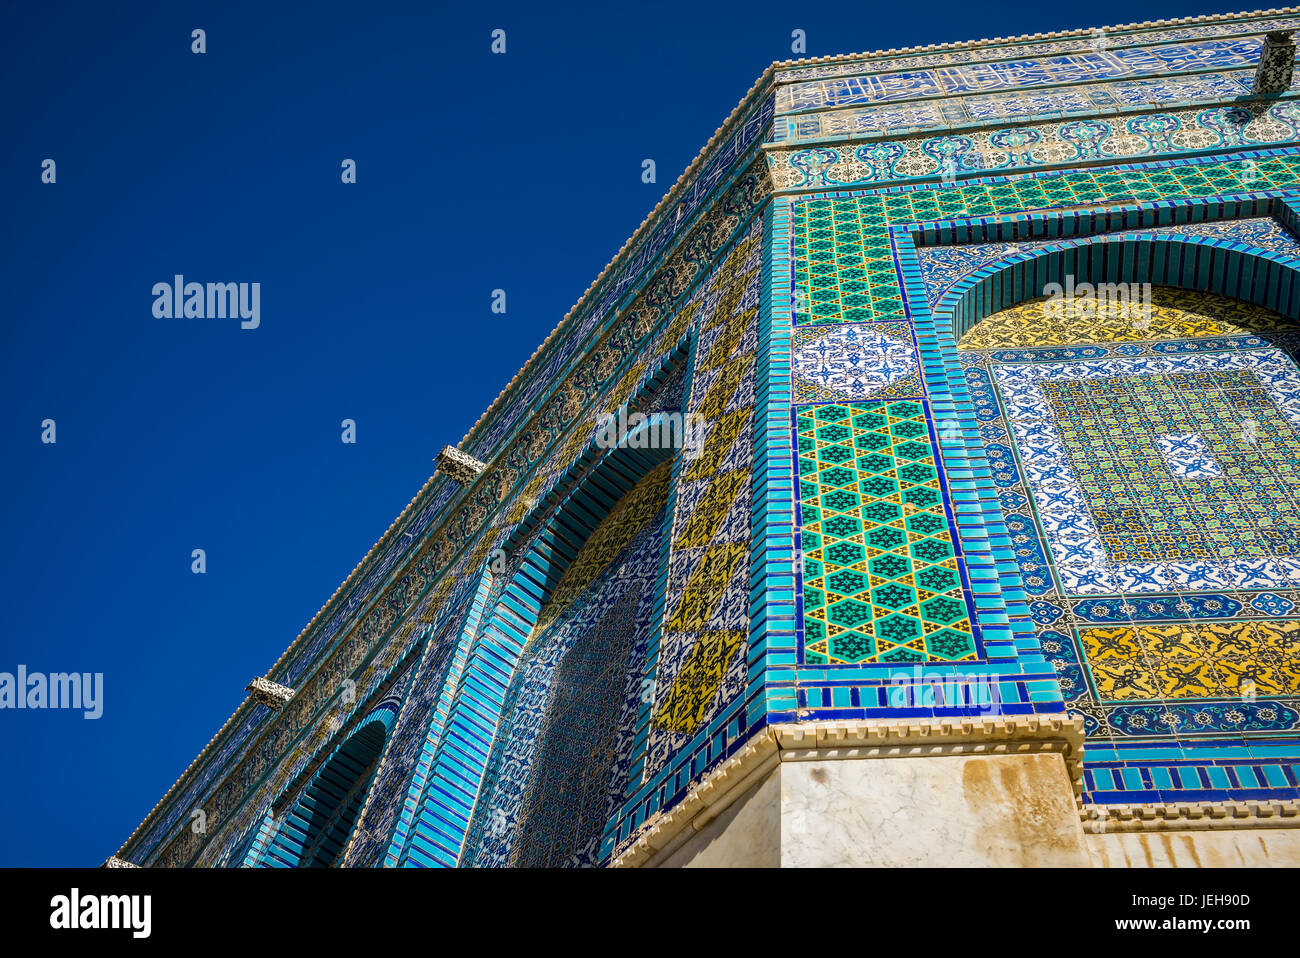 Facade of the Temple Mount and Dome of the Rock, Old City of Jerusalem; Jerusalem, Israel - Stock Image